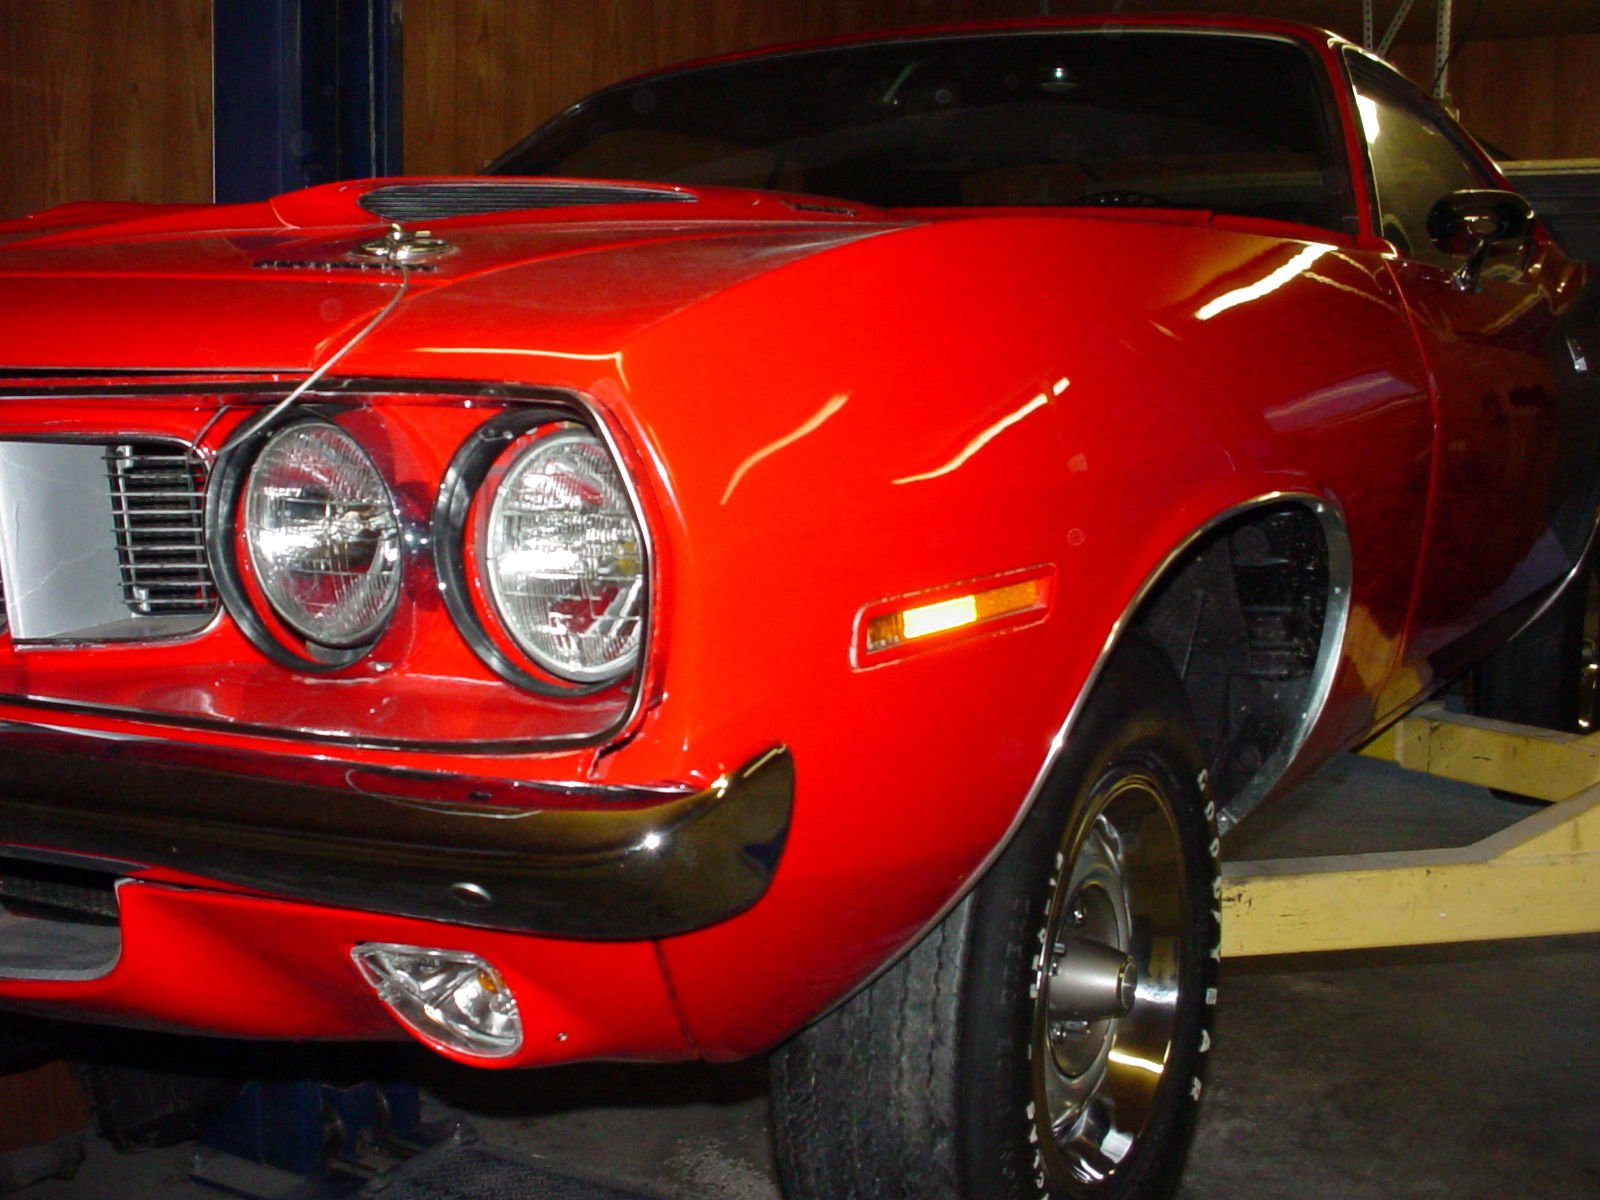 1971 rally red plymouth cuda 340 rust free 355 posi  rally